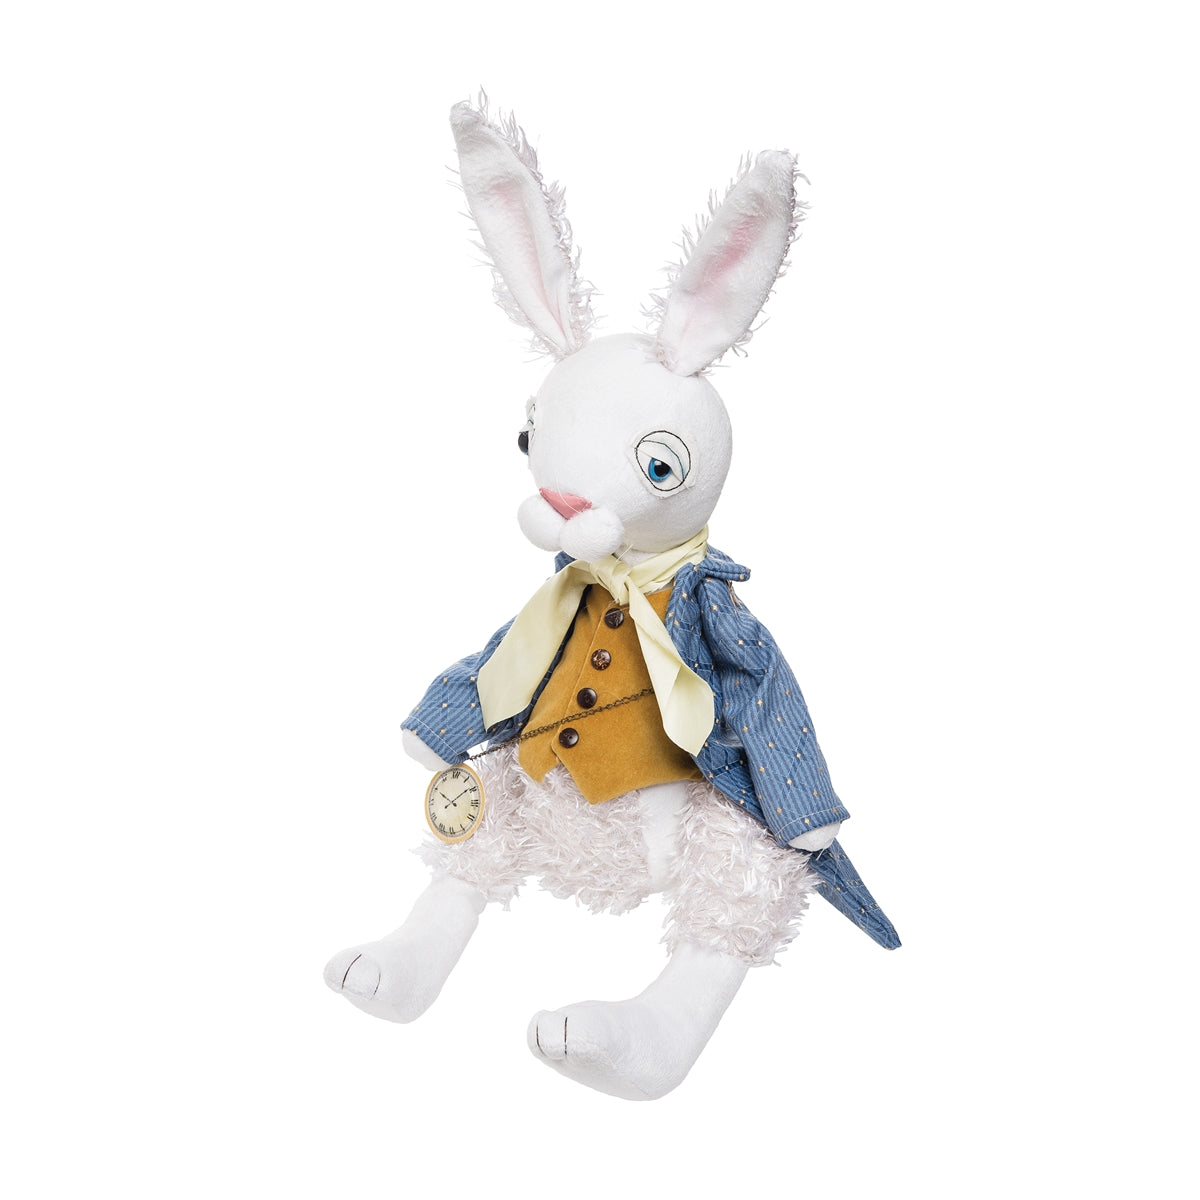 The White Rabbit Doll